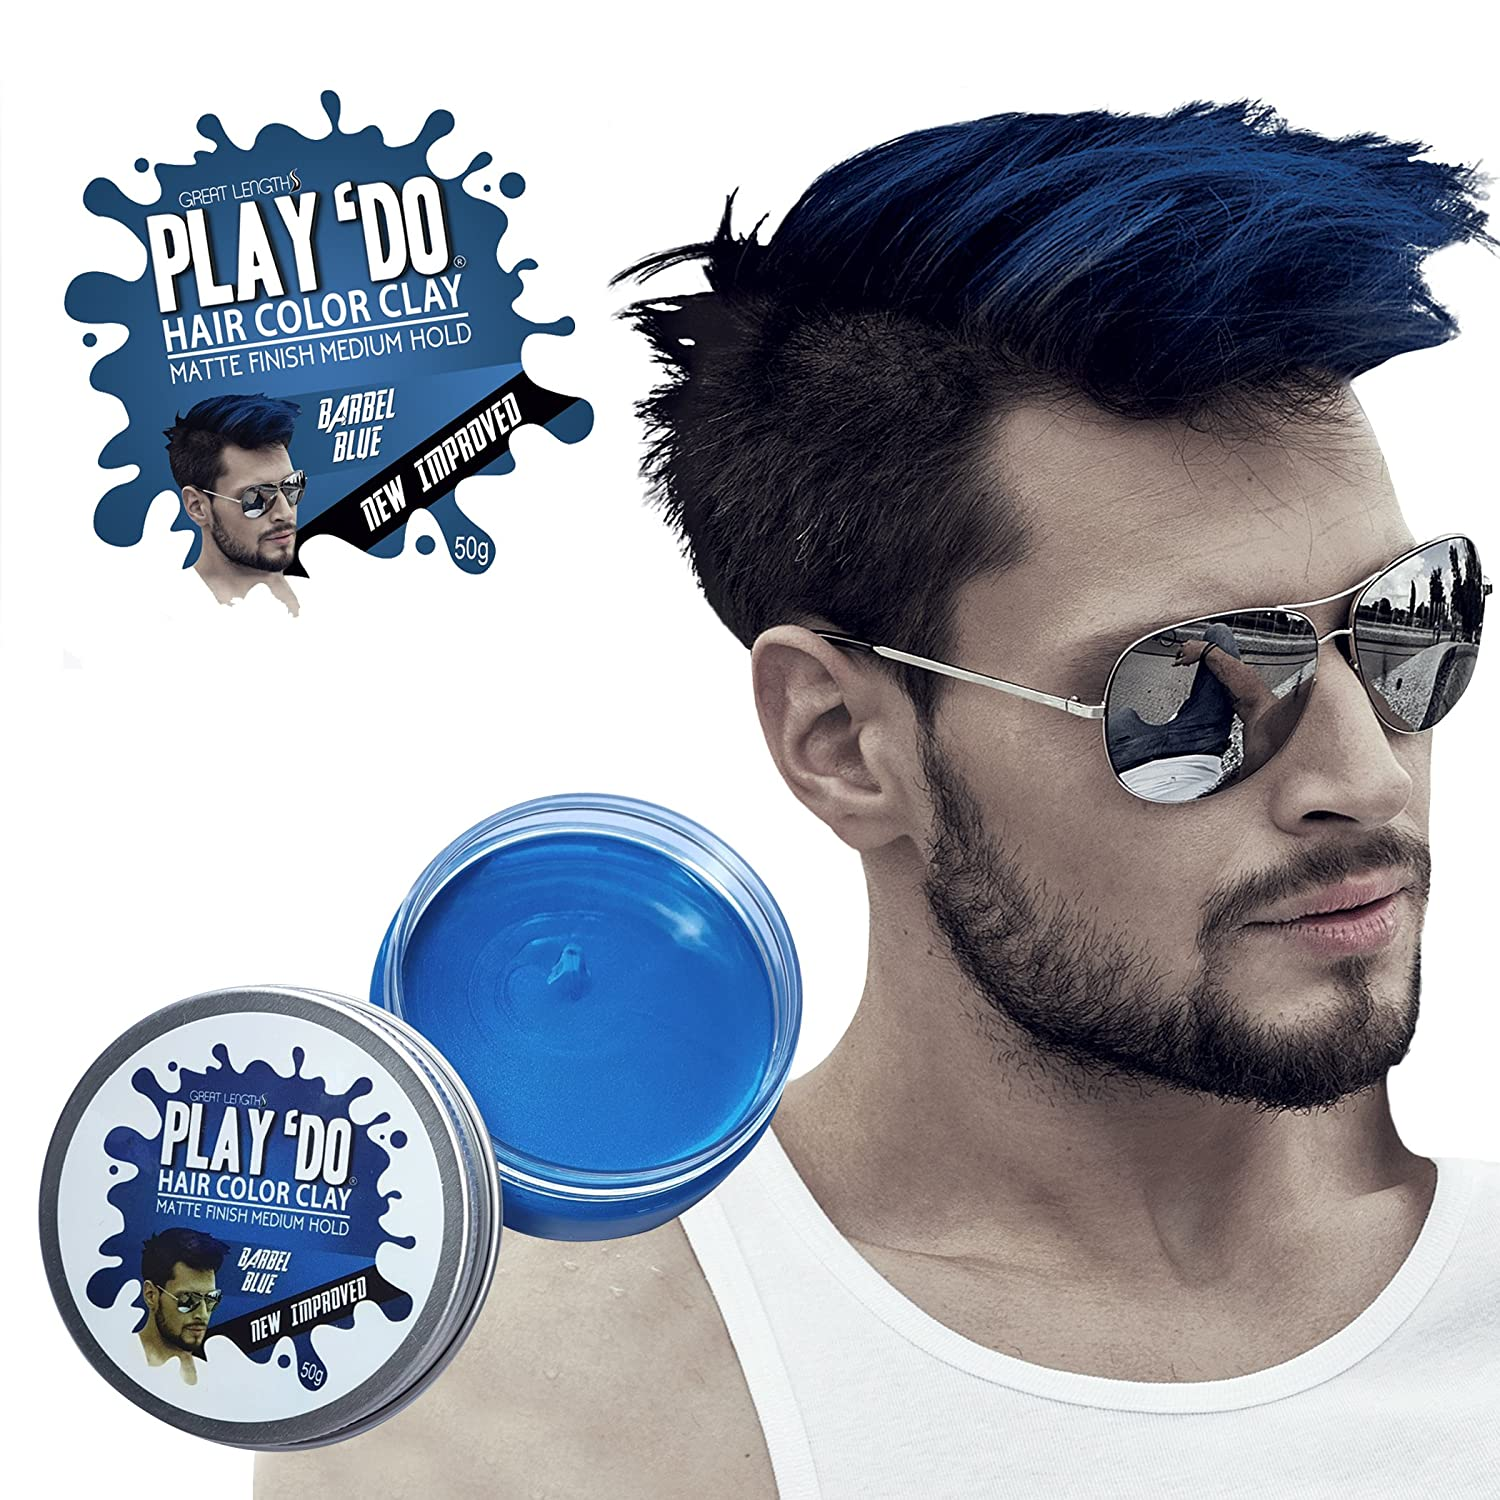 Play 'Do Temporary Hair Color, Hair Wax, Hair Clay, Mens Grooming, Blue hair dye(1.8 ounces) China